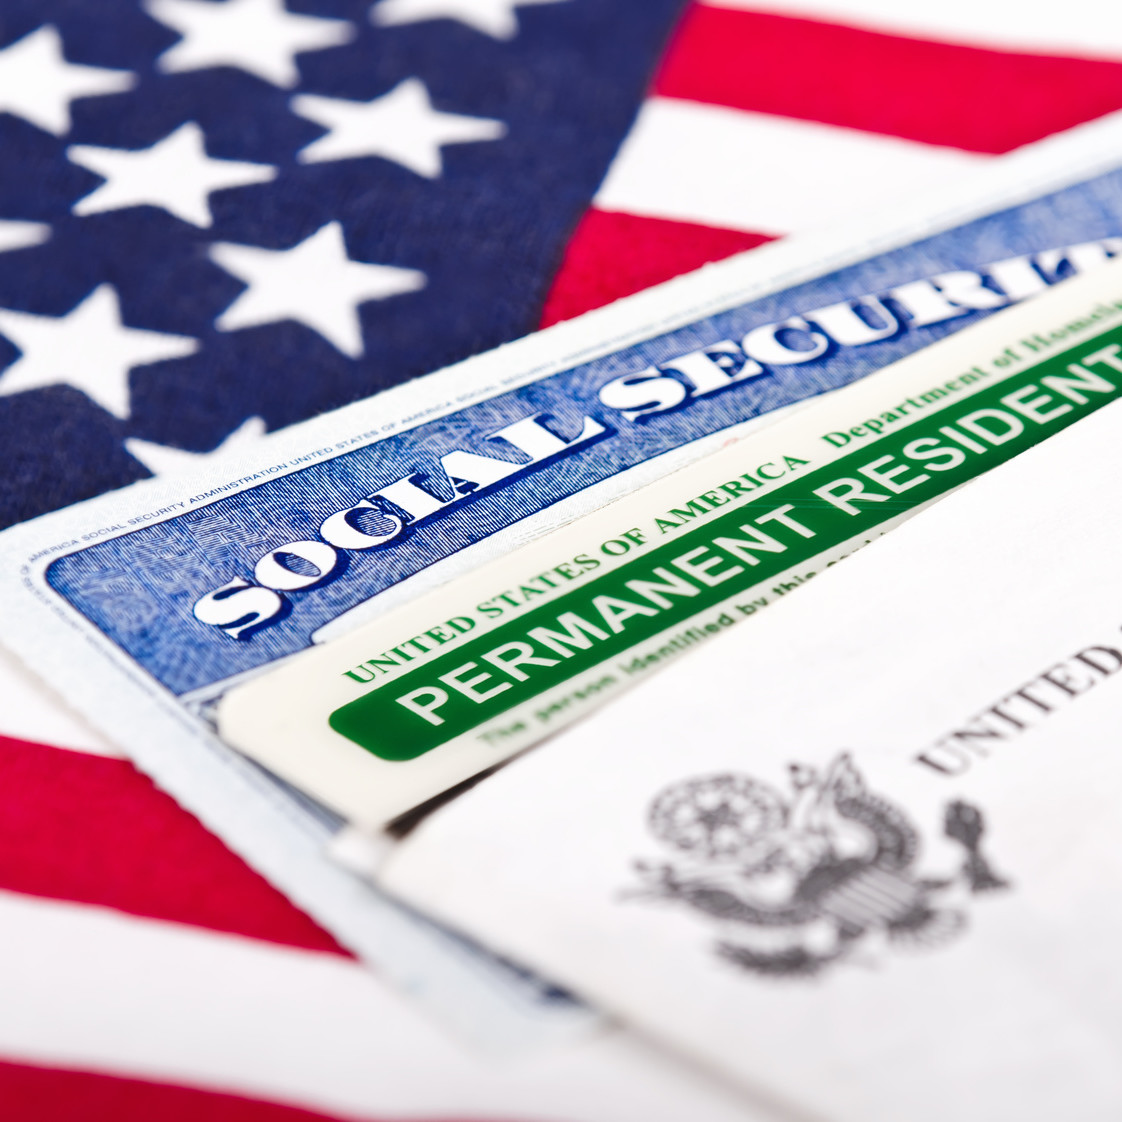 United States of America social security and green card with US flag on the background. Immigration concept. Closeup with shallow depth of field.